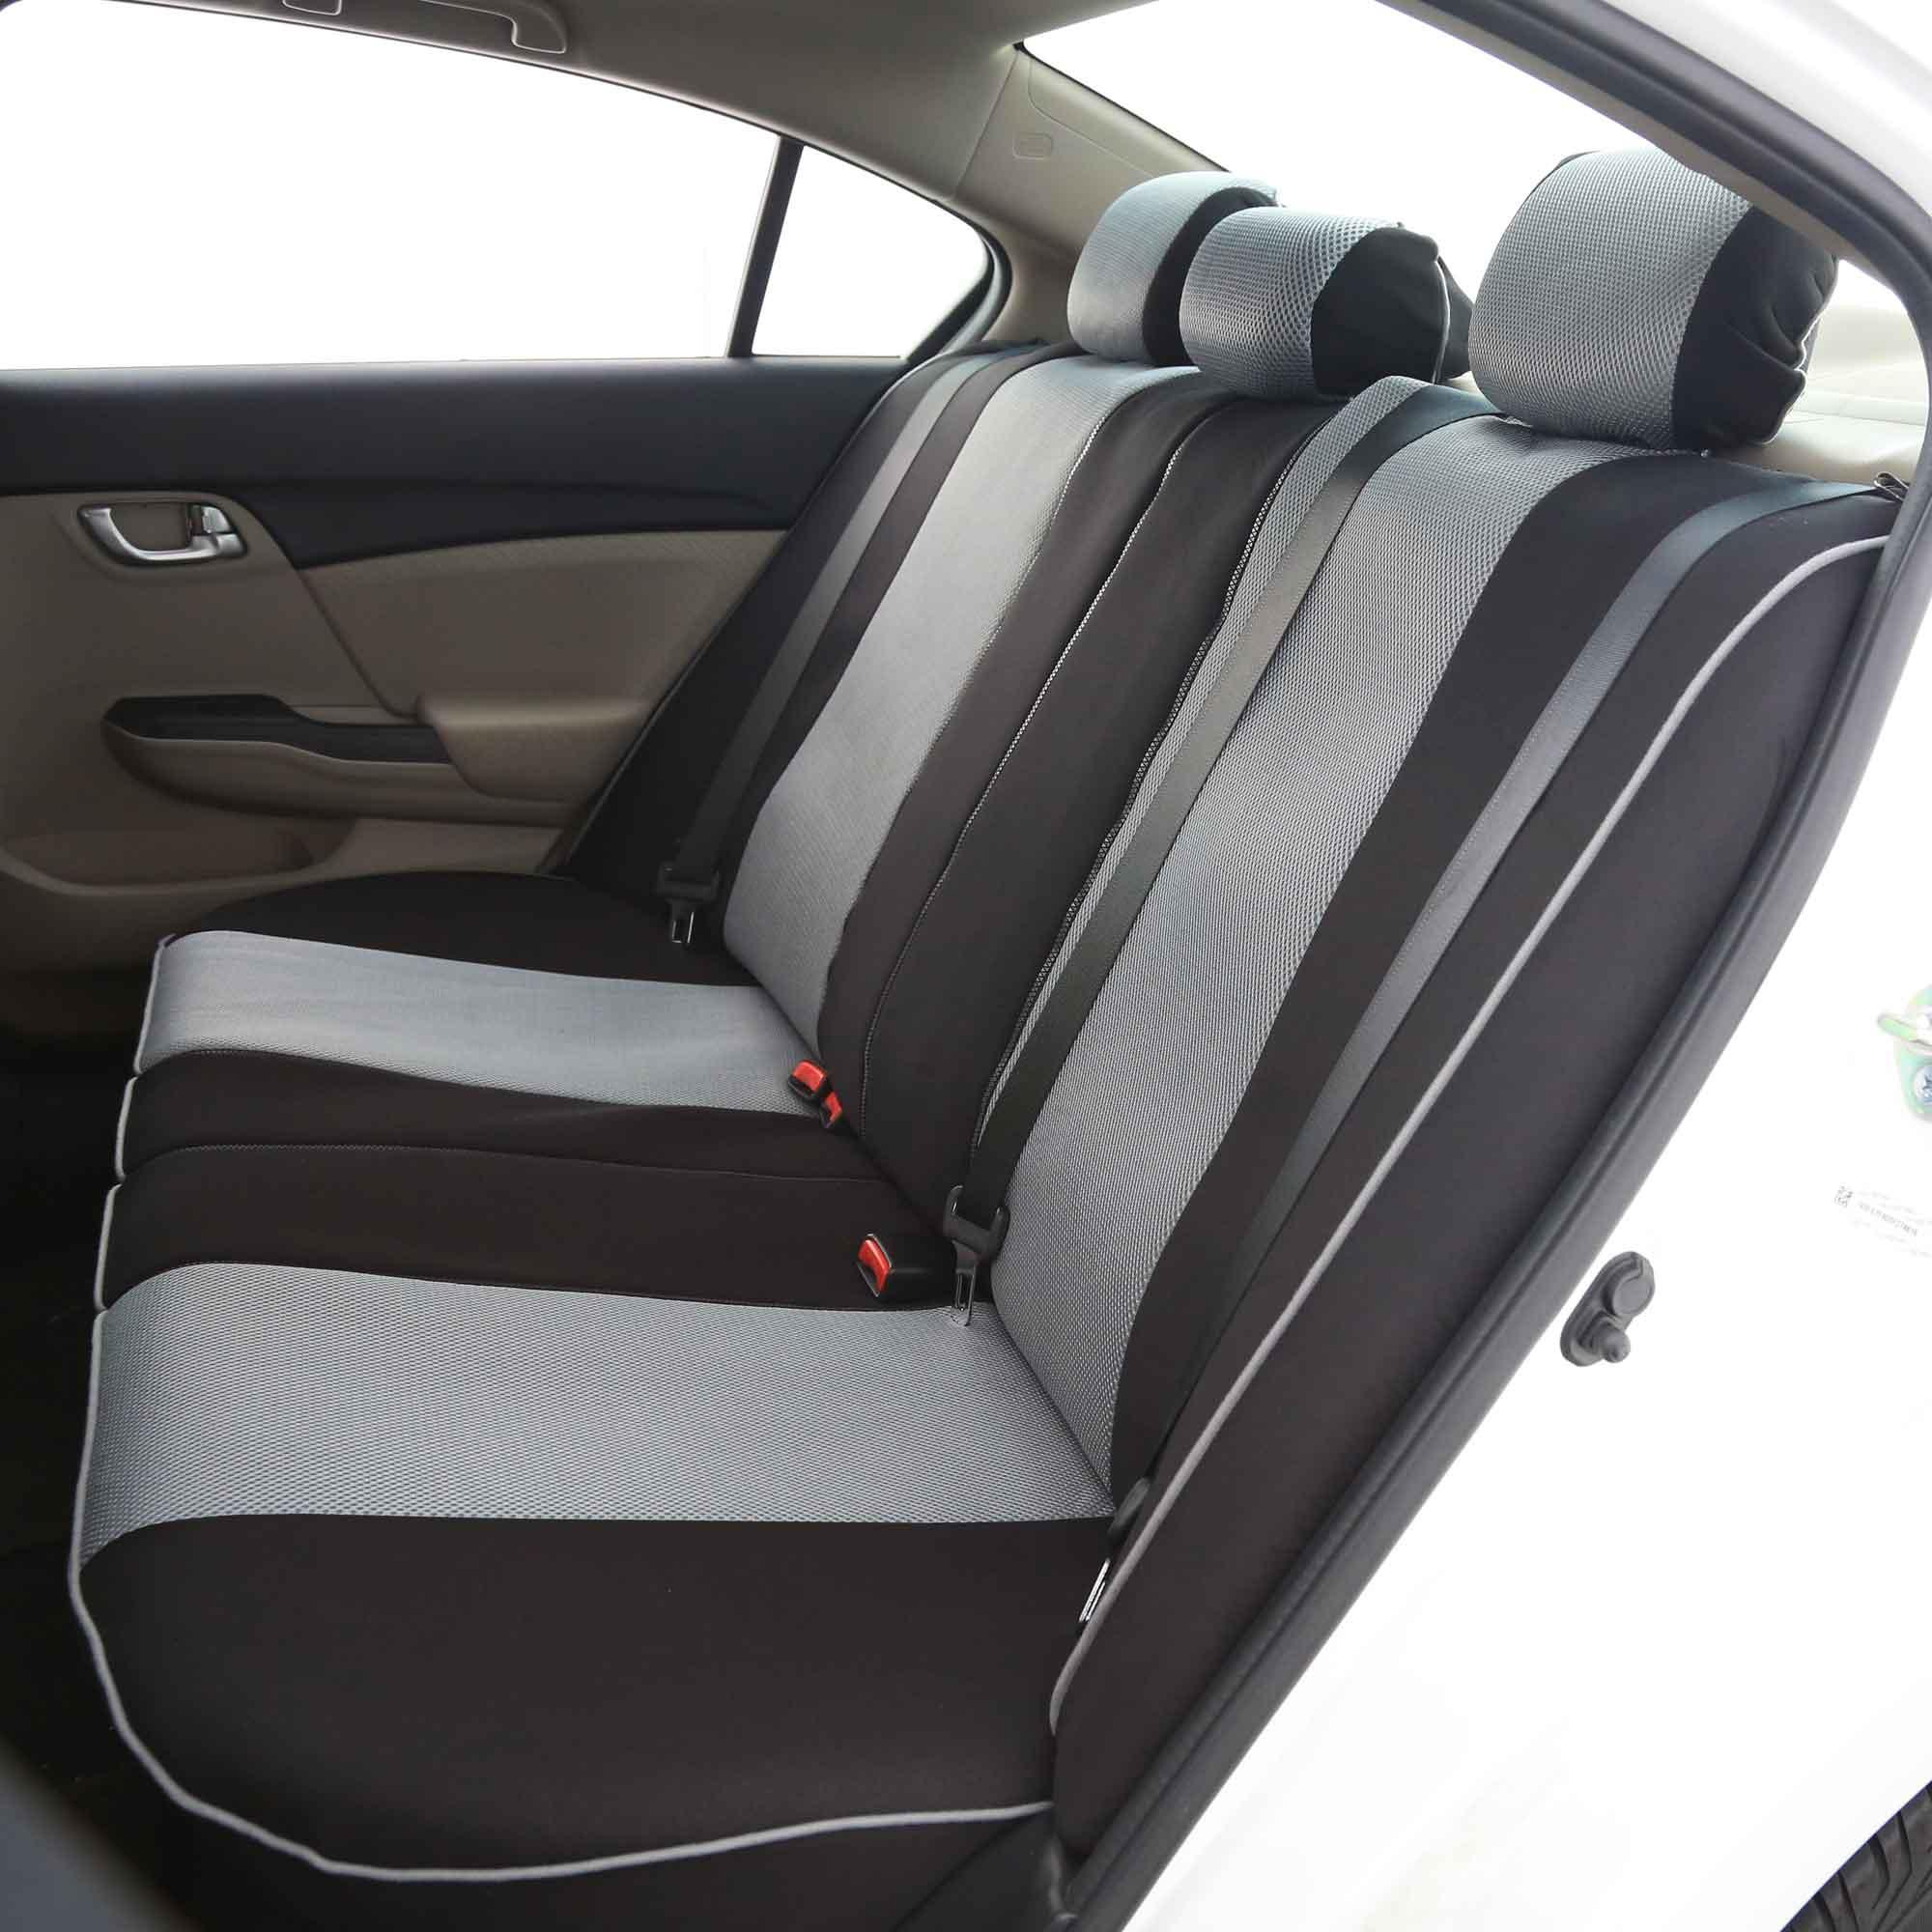 Custom Toyota Seat Covers For Car Truck Suv Van Front Rear